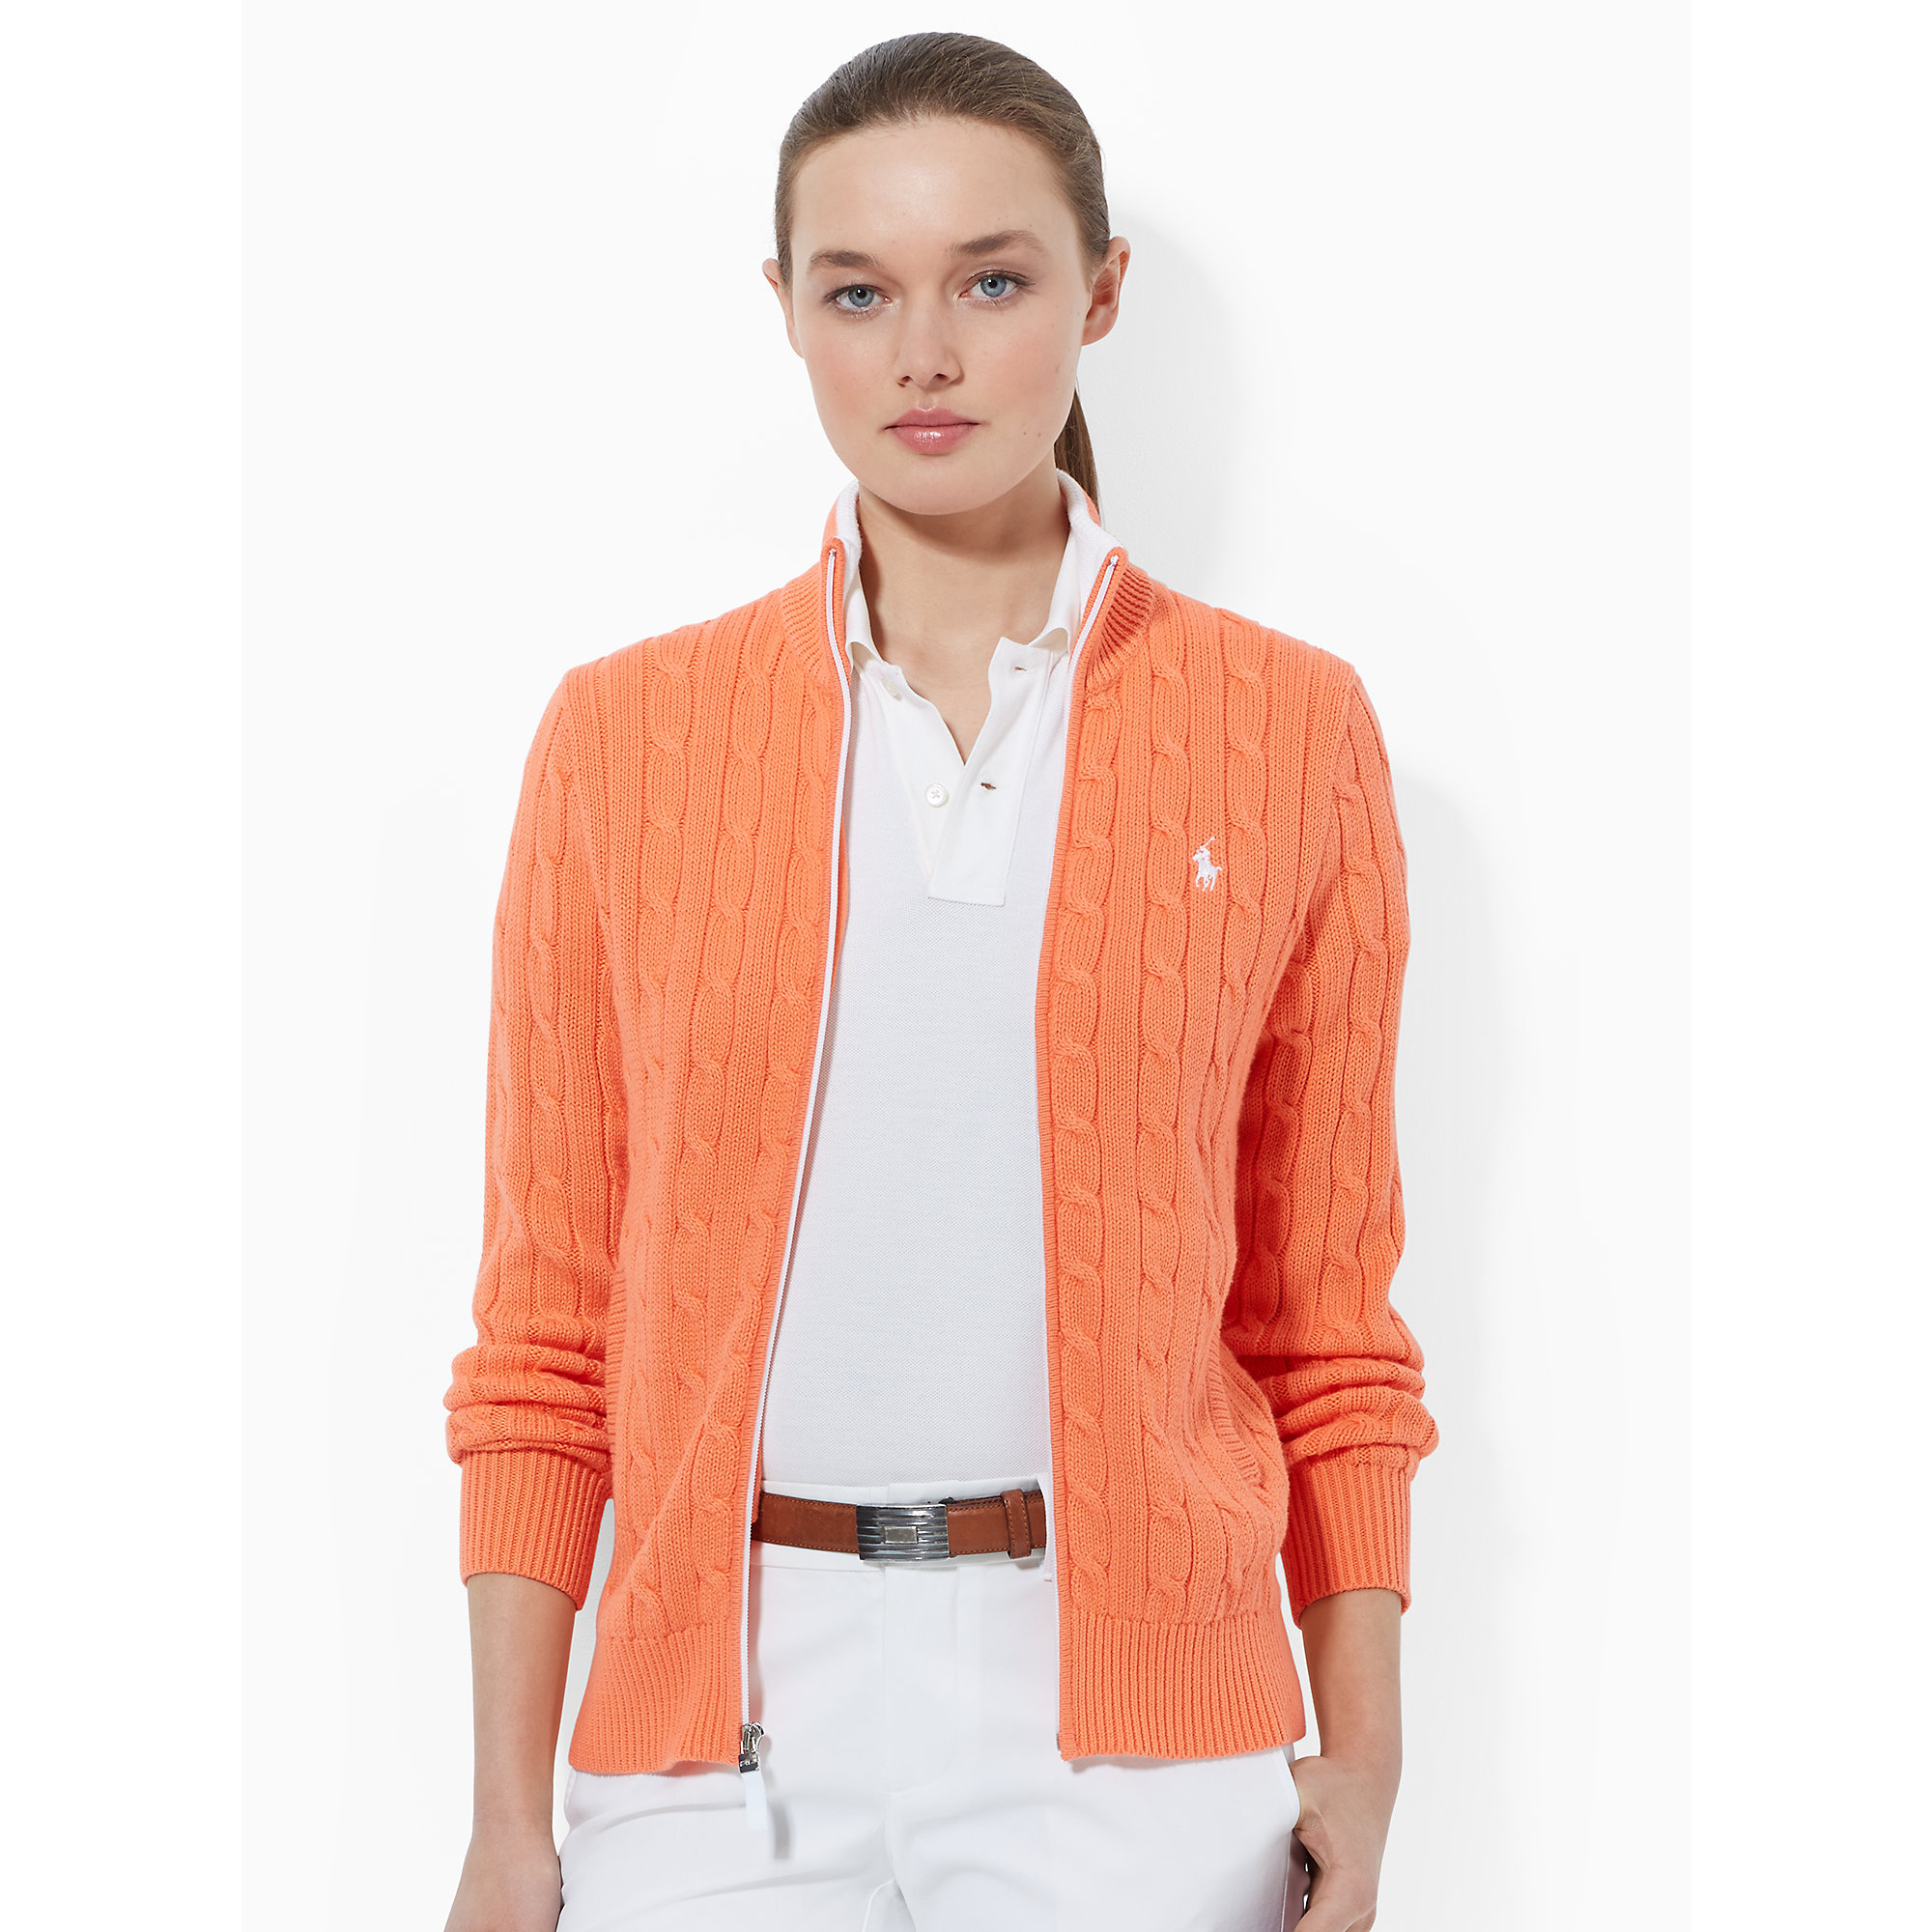 Ralph Lauren Golf Cable Knit Zip Up Sweater In Orange Lyst